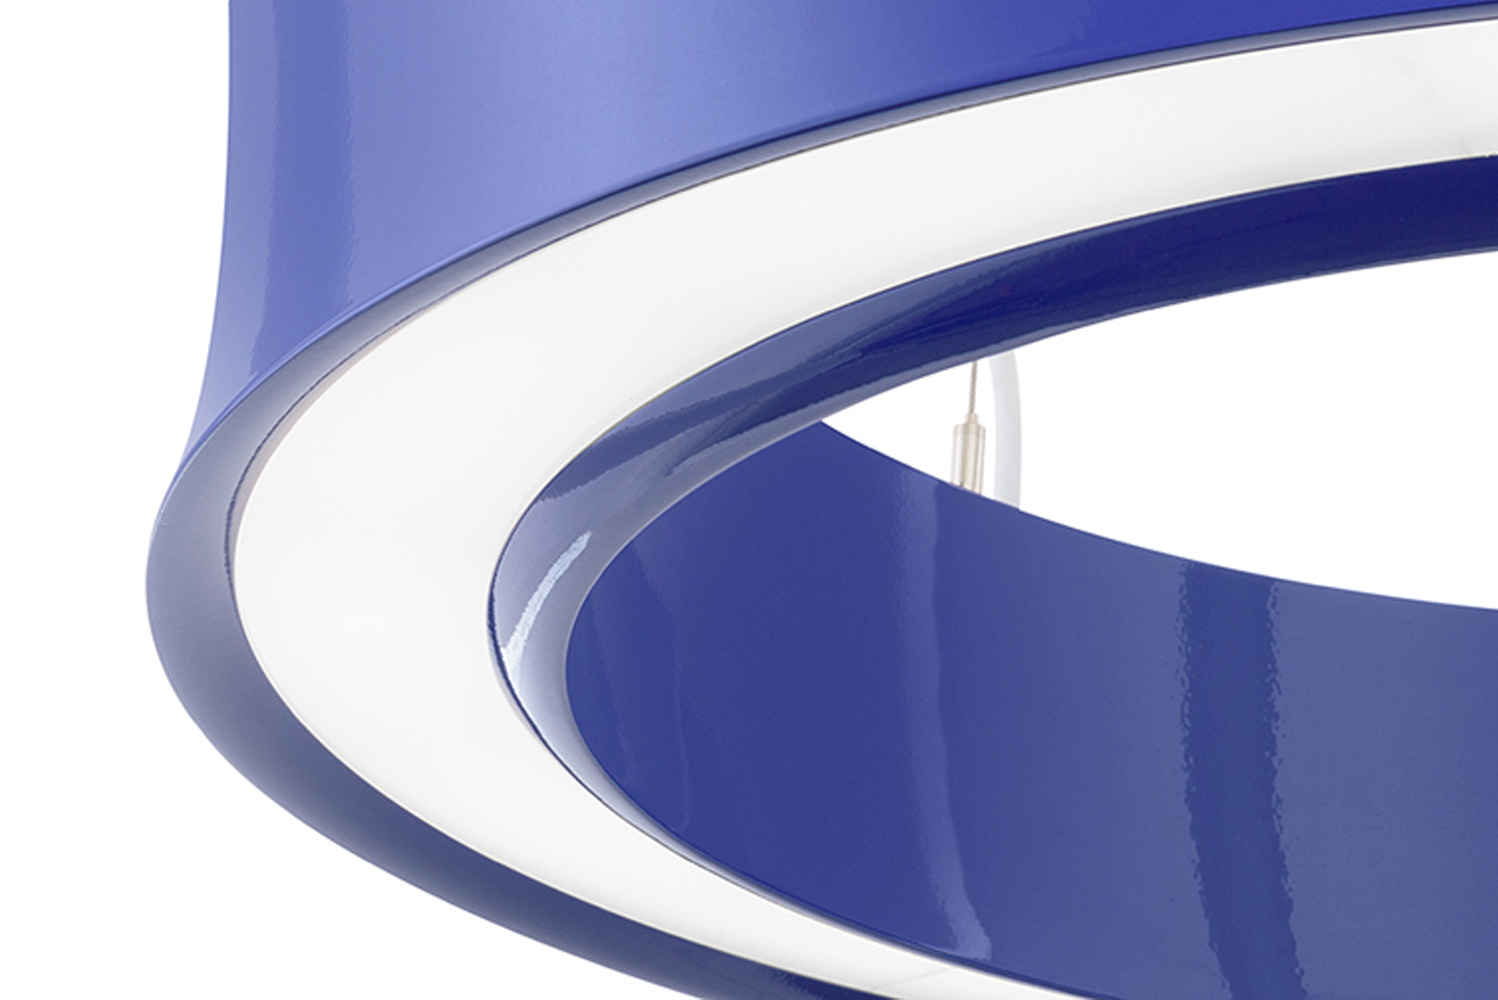 Modeled after the form of the classic hula hoop, Hula is defined by twin curvy, rolled extrusions.